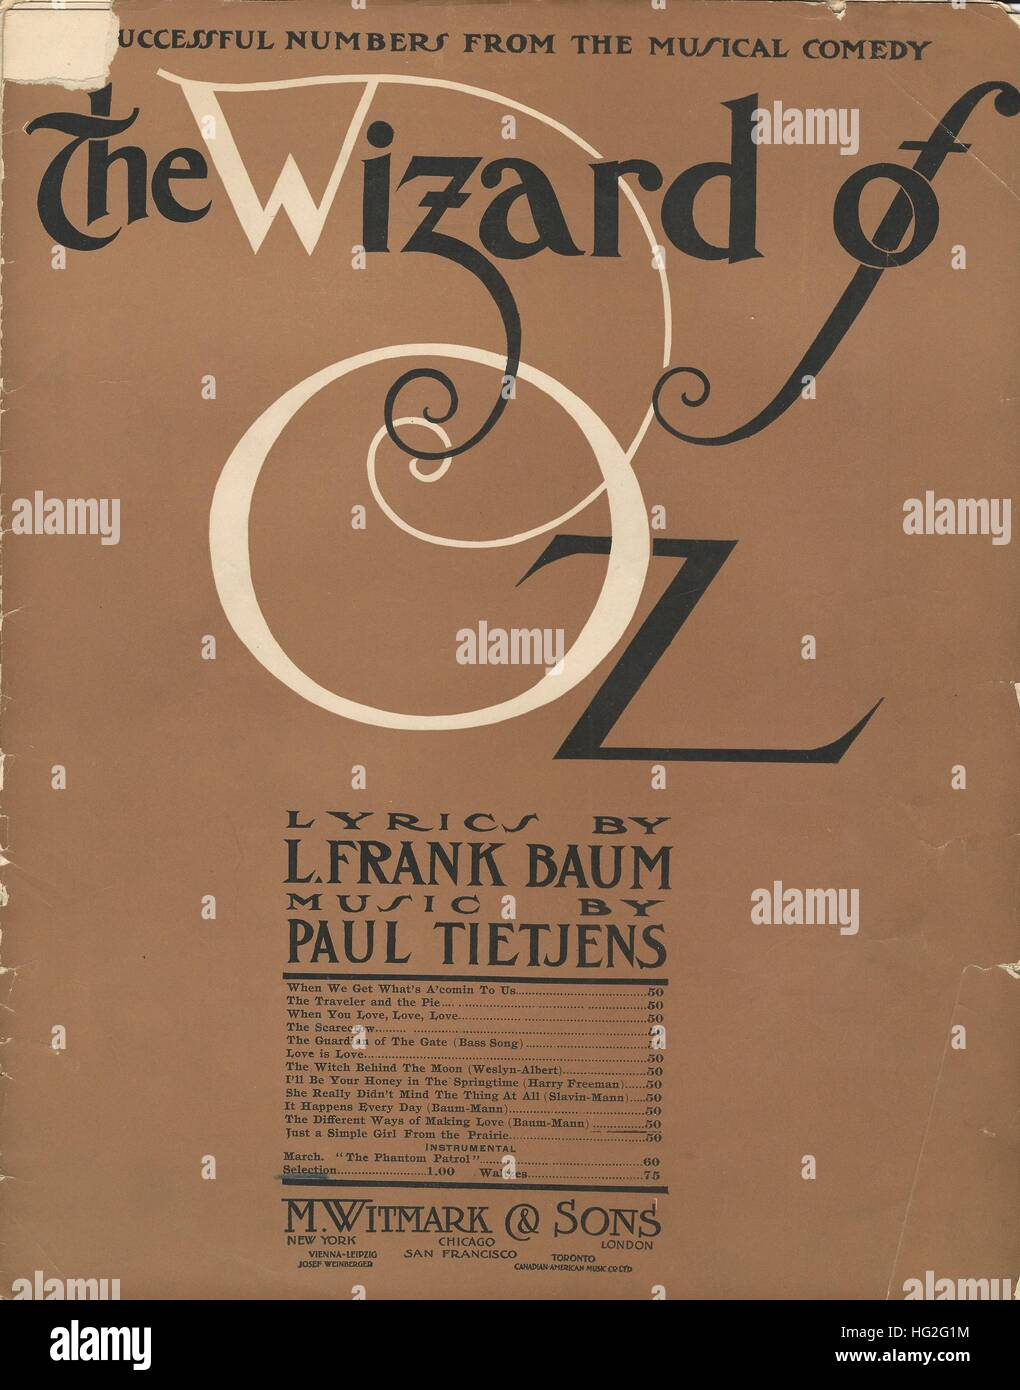 The Wizard Of Oz 1903 Musical Sheet Music Cover